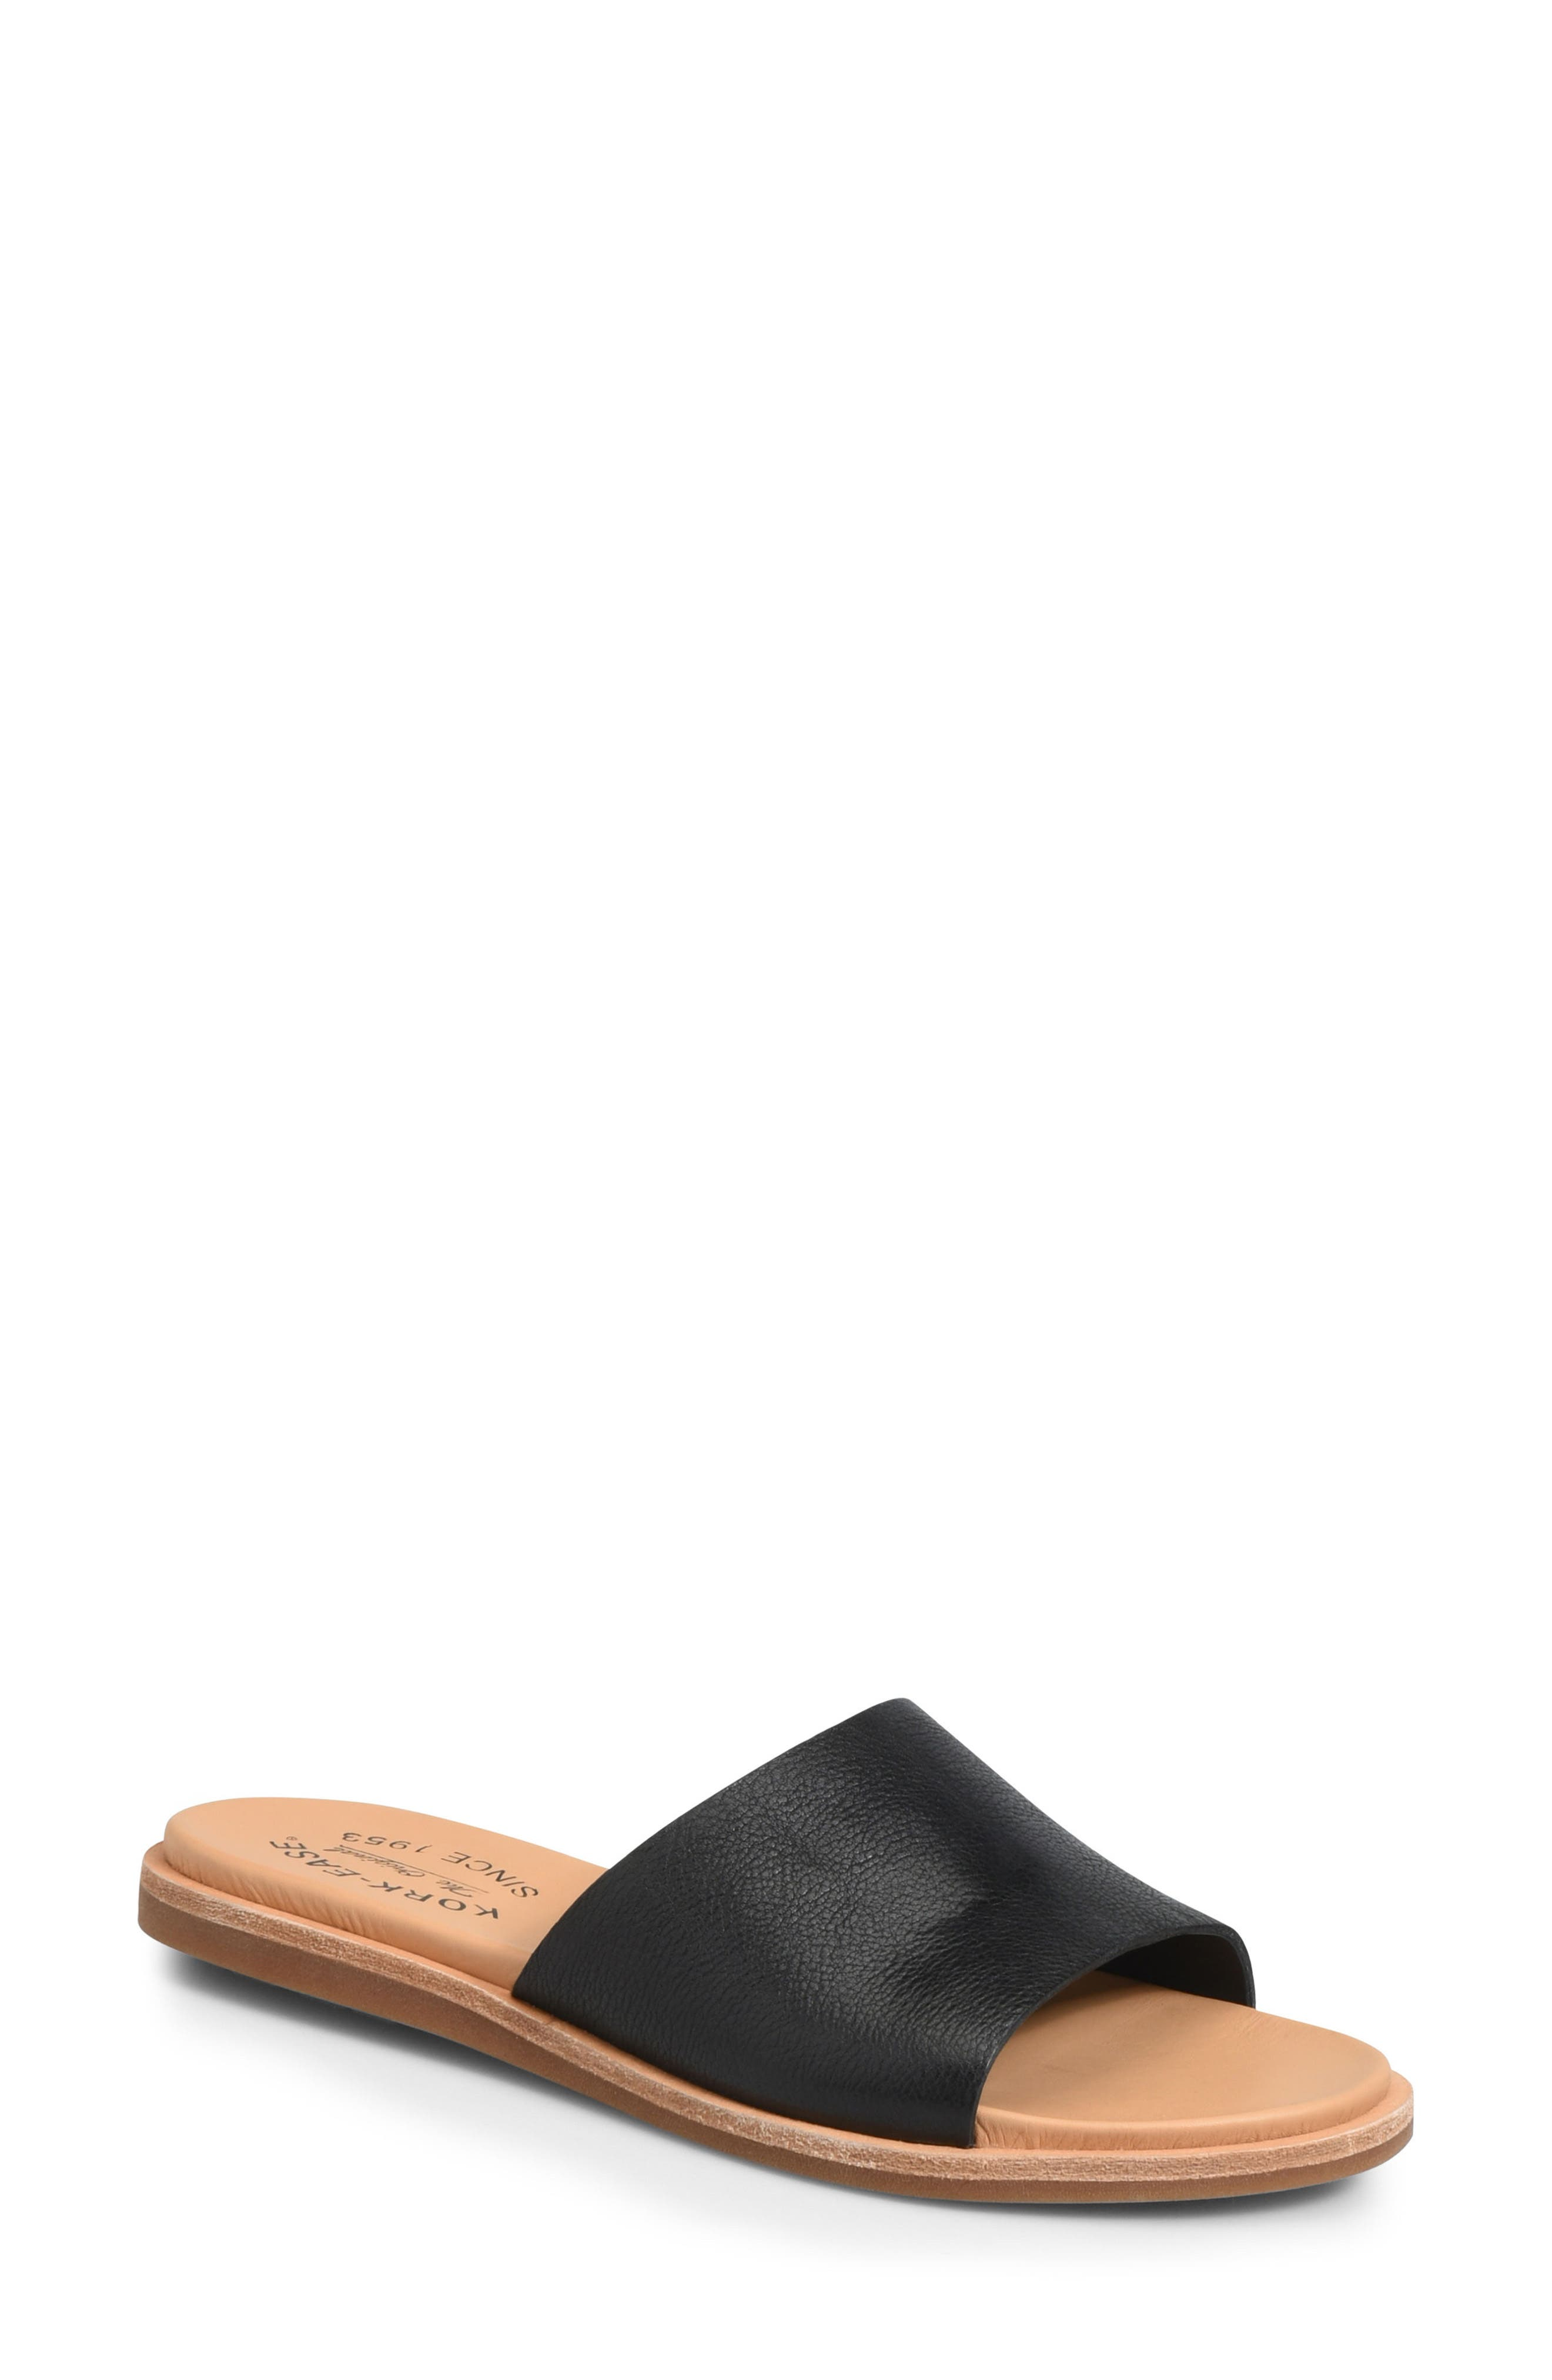 Gila Slide Sandal,                             Main thumbnail 1, color,                             BLACK LEATHER